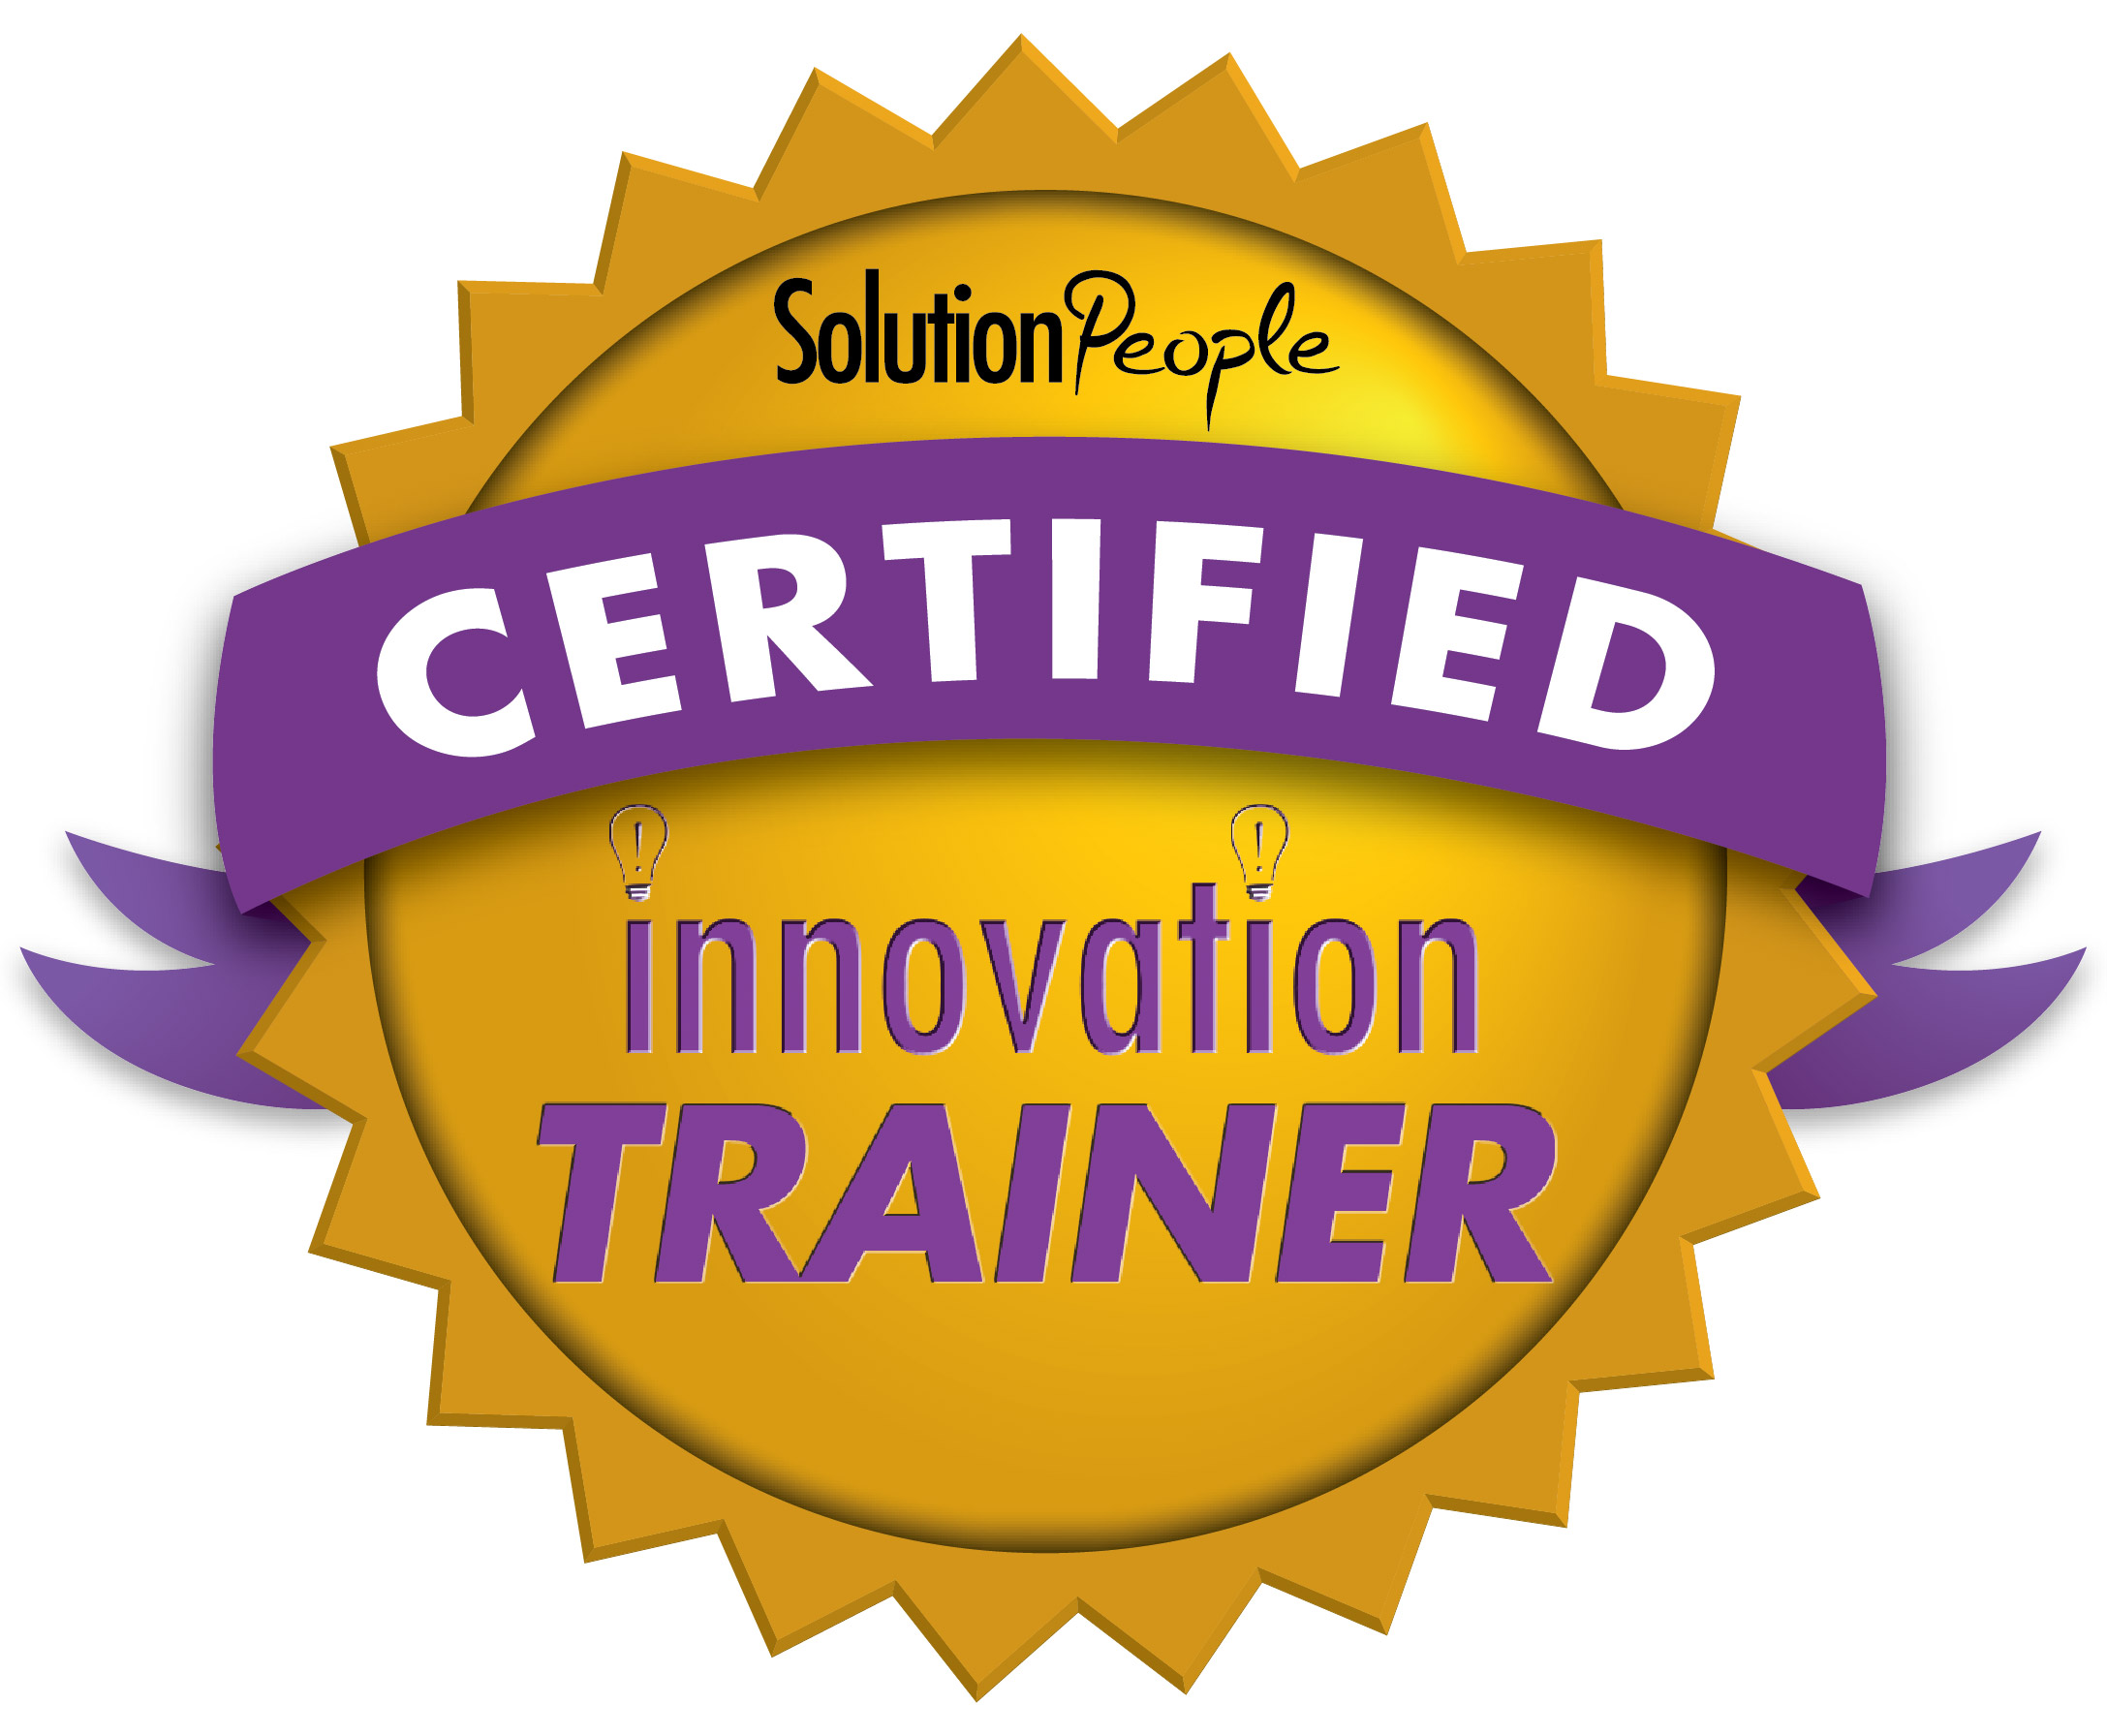 Seal of a certified innovation trainer from Solution People